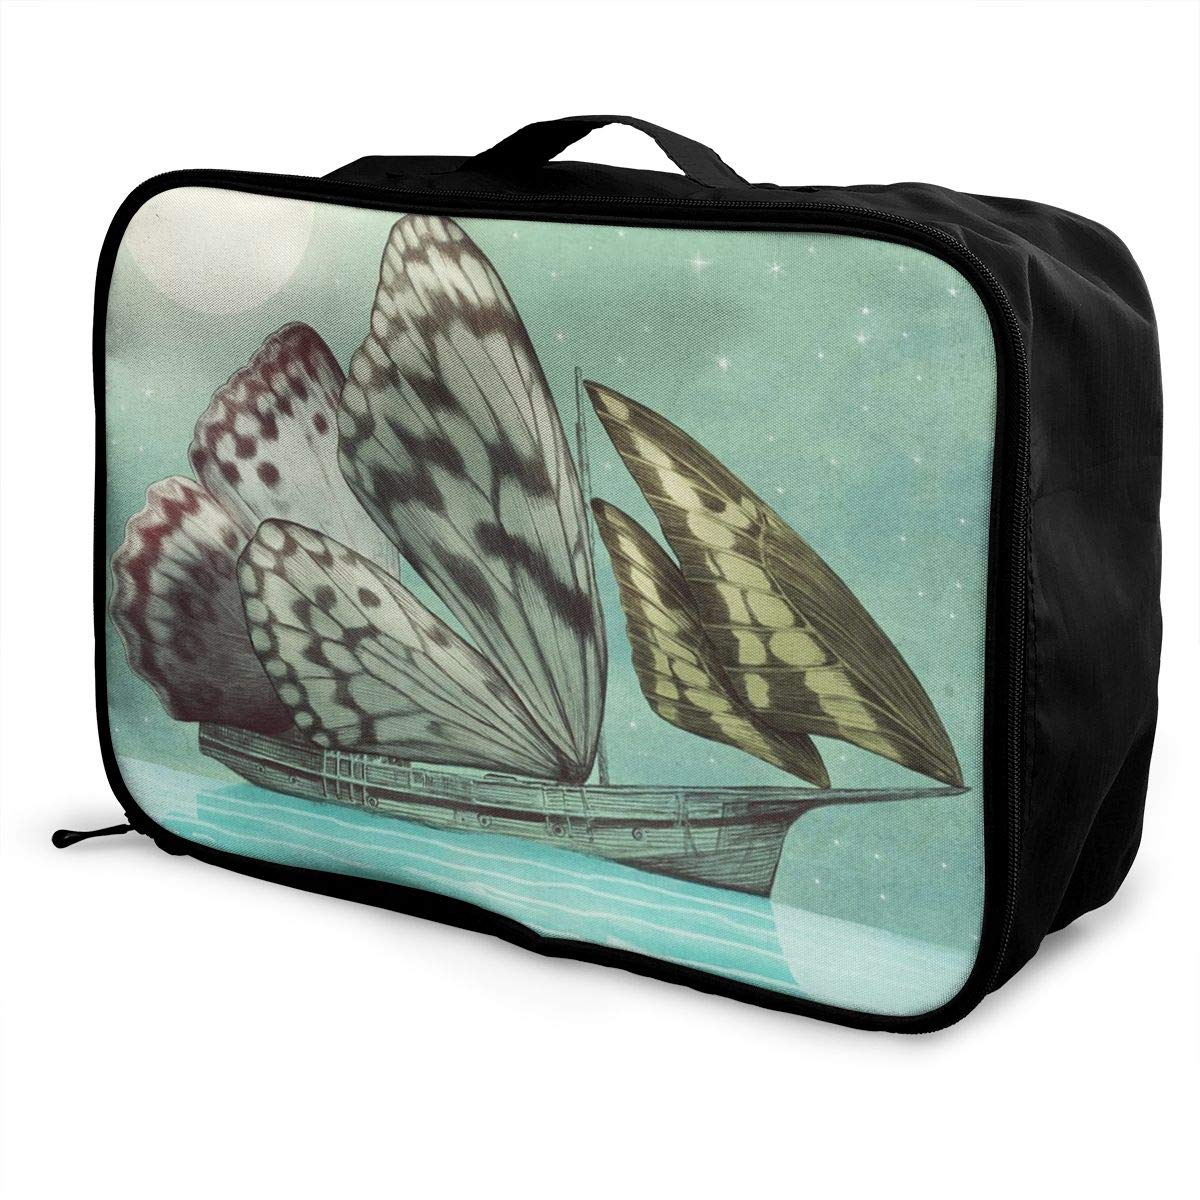 Butterfly Wings Sailboat Sea Voyage Travel Lightweight Waterproof Folding Storage Portable Luggage Duffle Tote Bag Large Capacity In Trolley Handle Bags 6x11x15 Inch